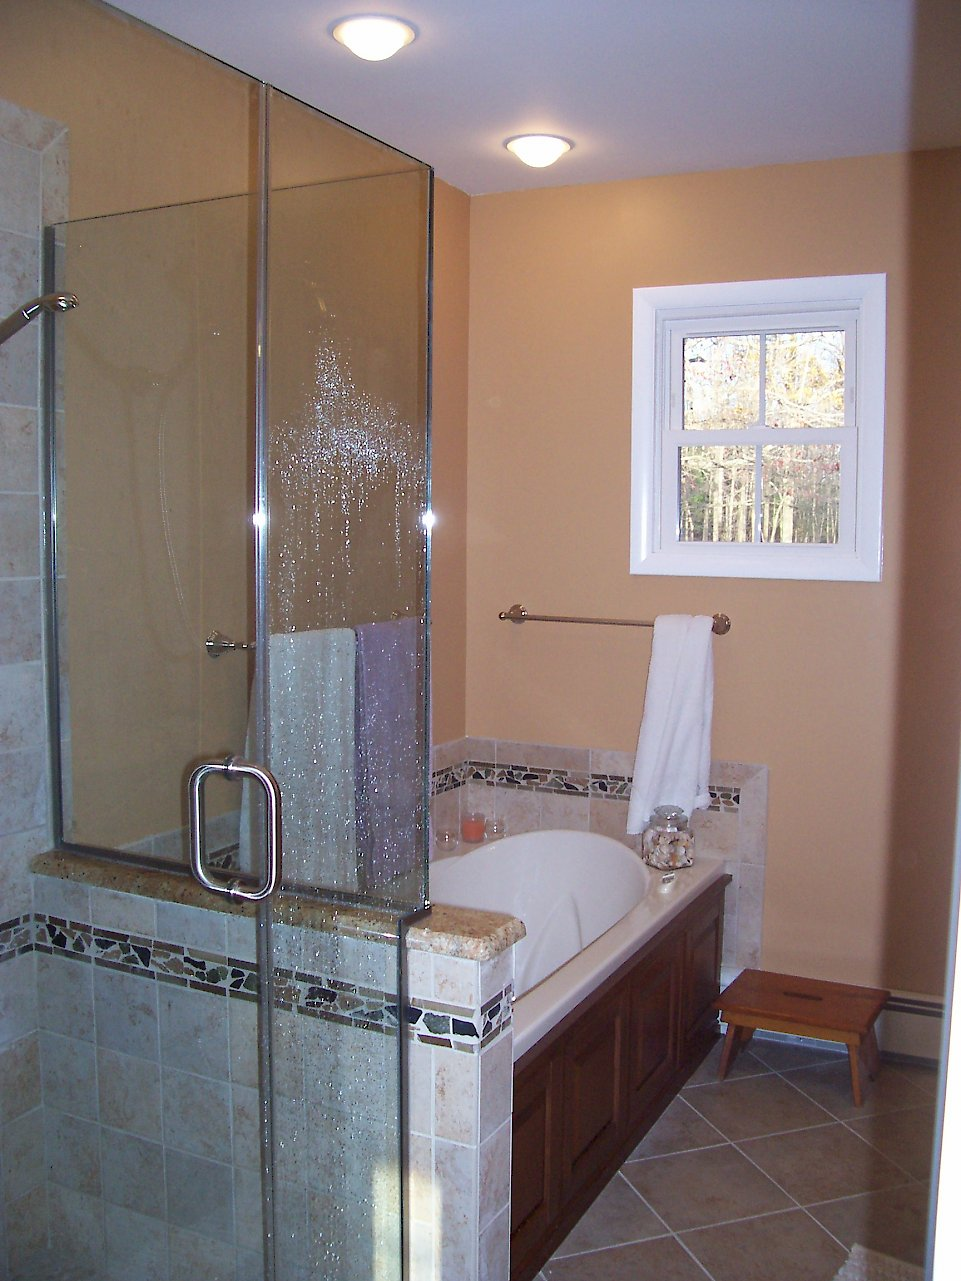 Bain Ultra tub next to the shower.